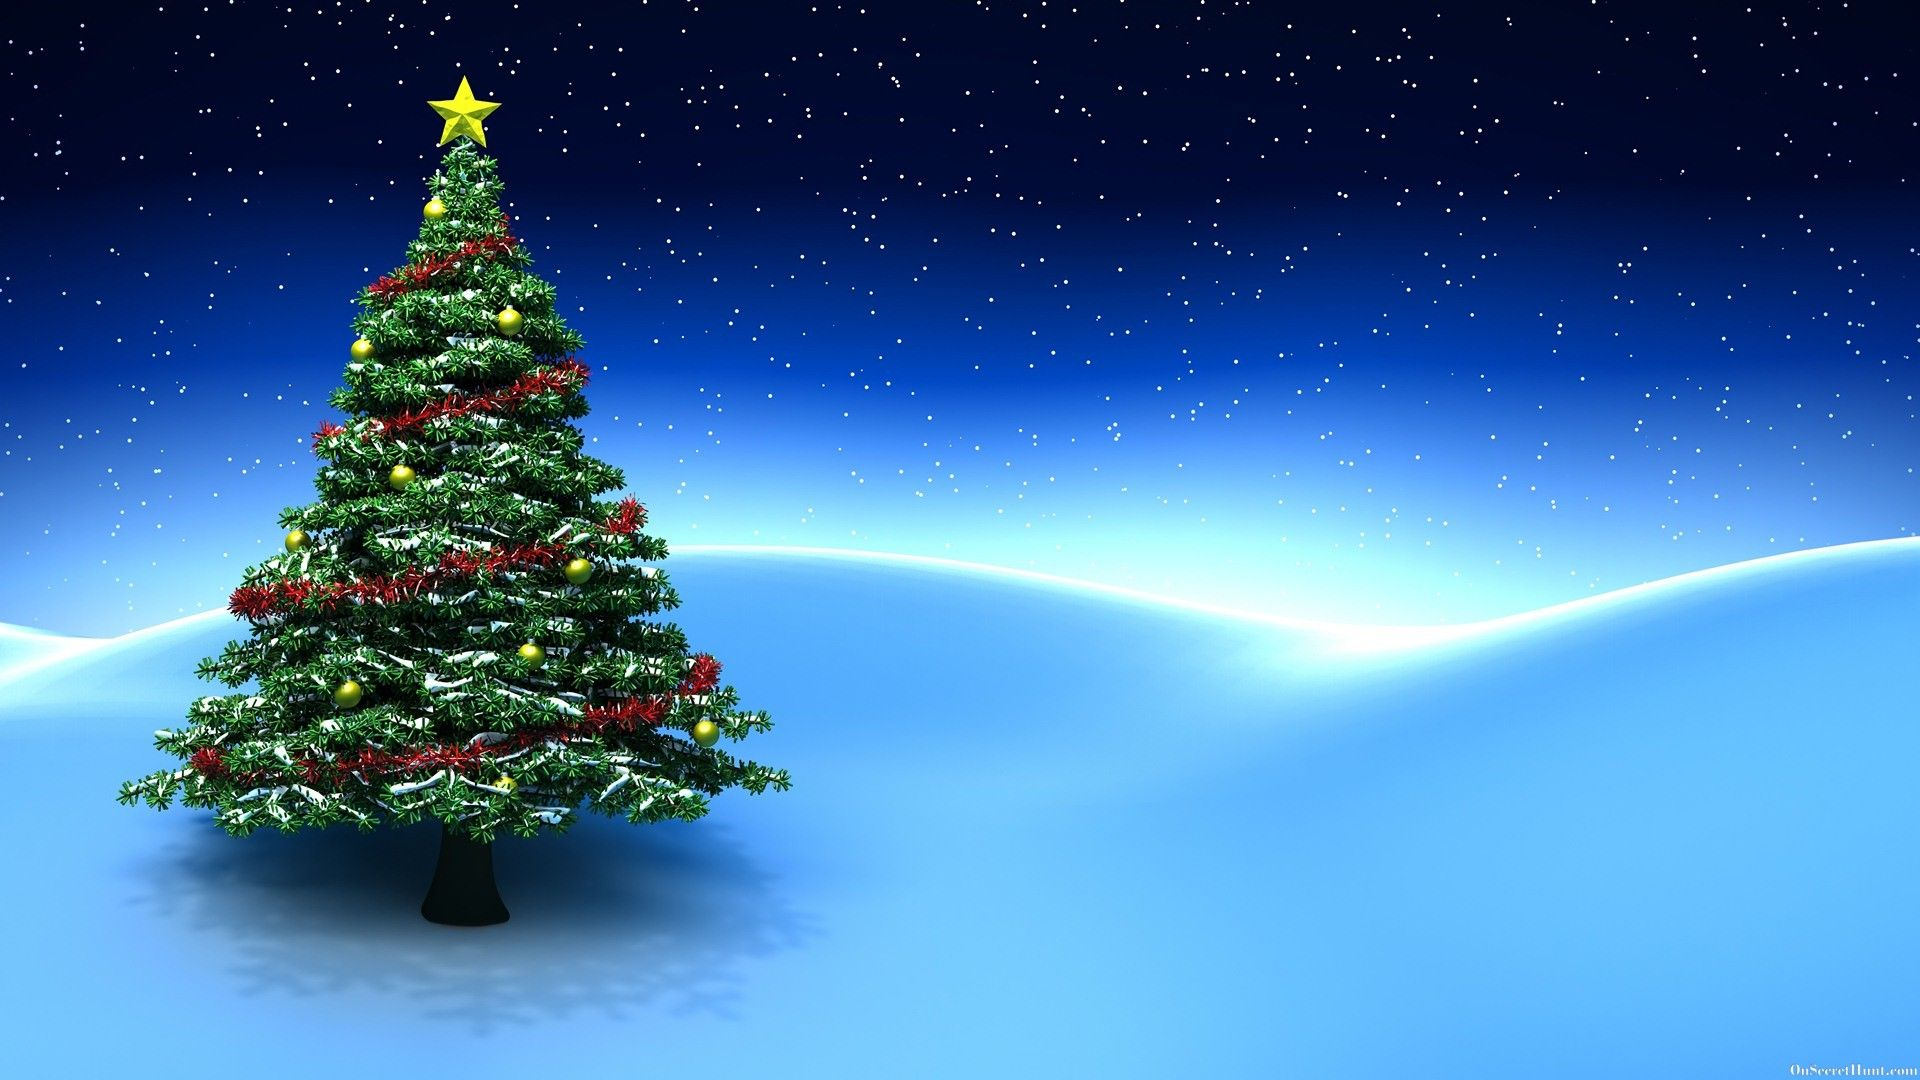 Animated Christmas Tree Wallpaper Christmas Tree Background Animated Christmas Tree Blue Christmas Ornaments